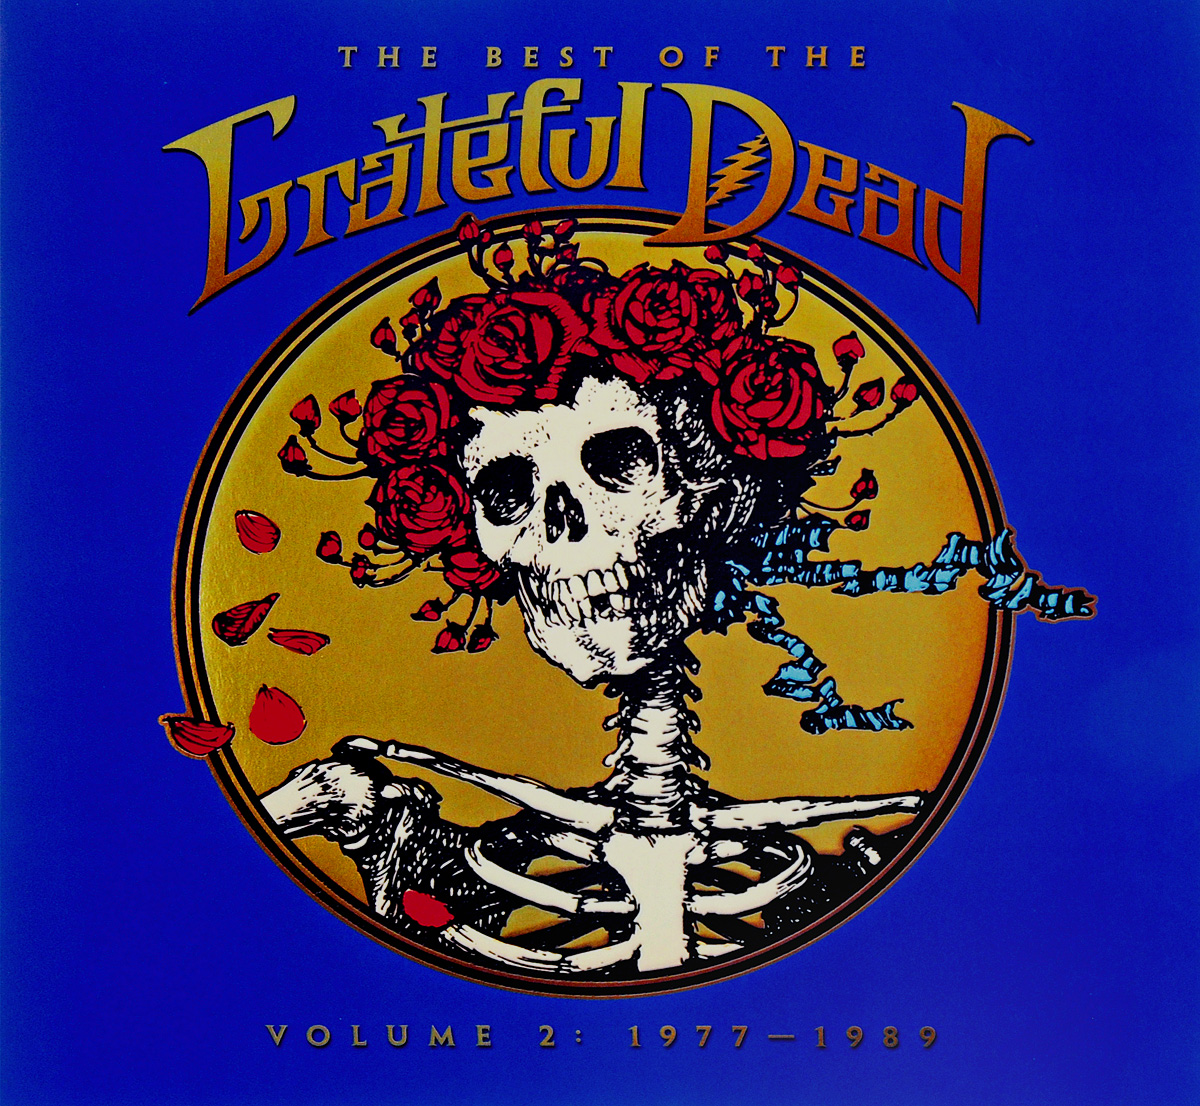 The Grateful Dead. The Best Of The Grateful Dead Volume 2: 1977 - 1989 (LP) dead can dance dead can dance spiritchaser 2 lp